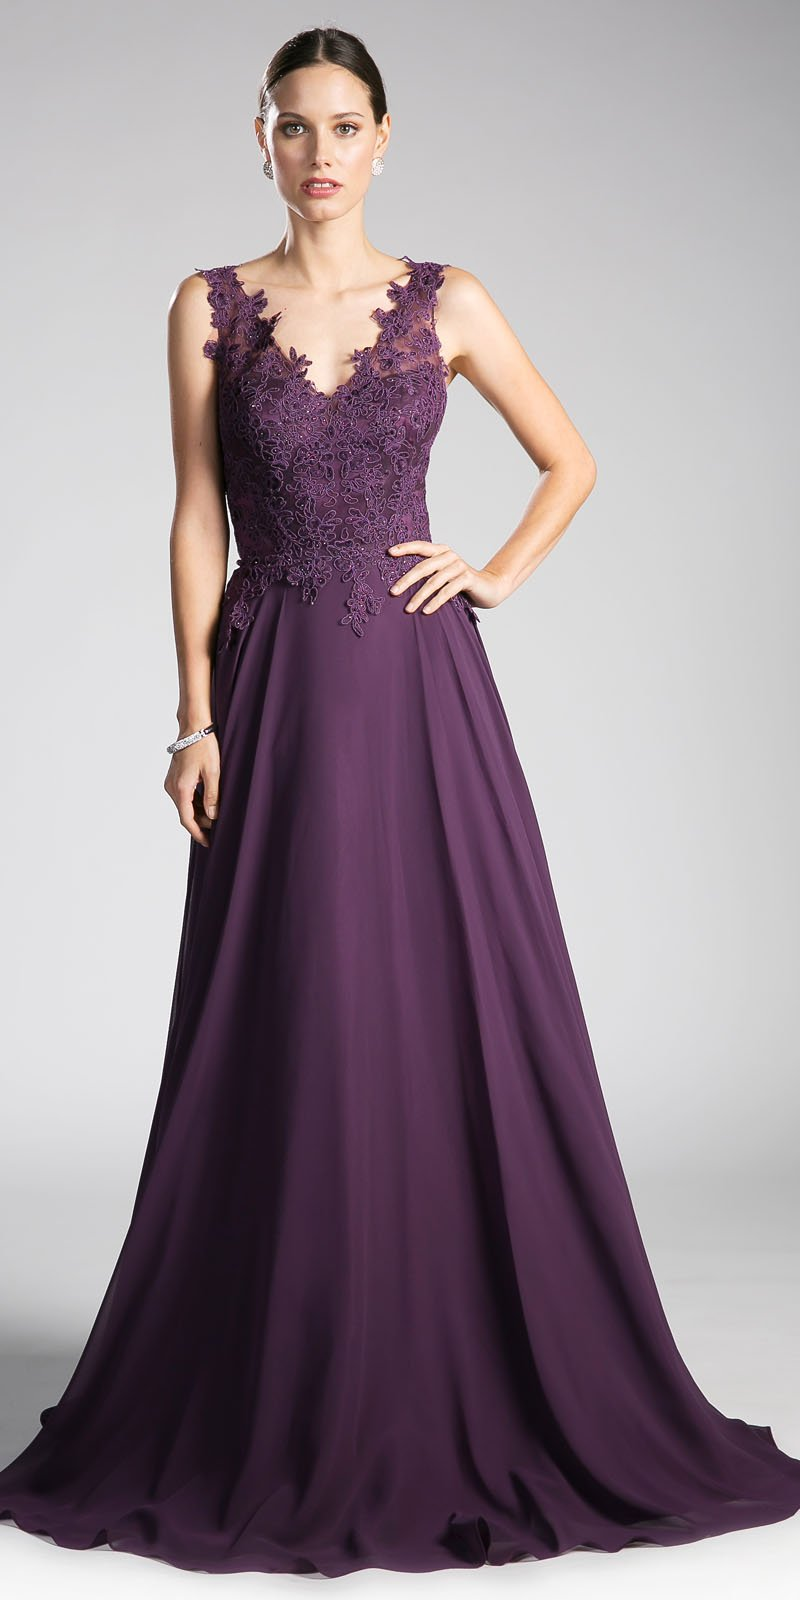 Eggplant Bridesmaid Dress